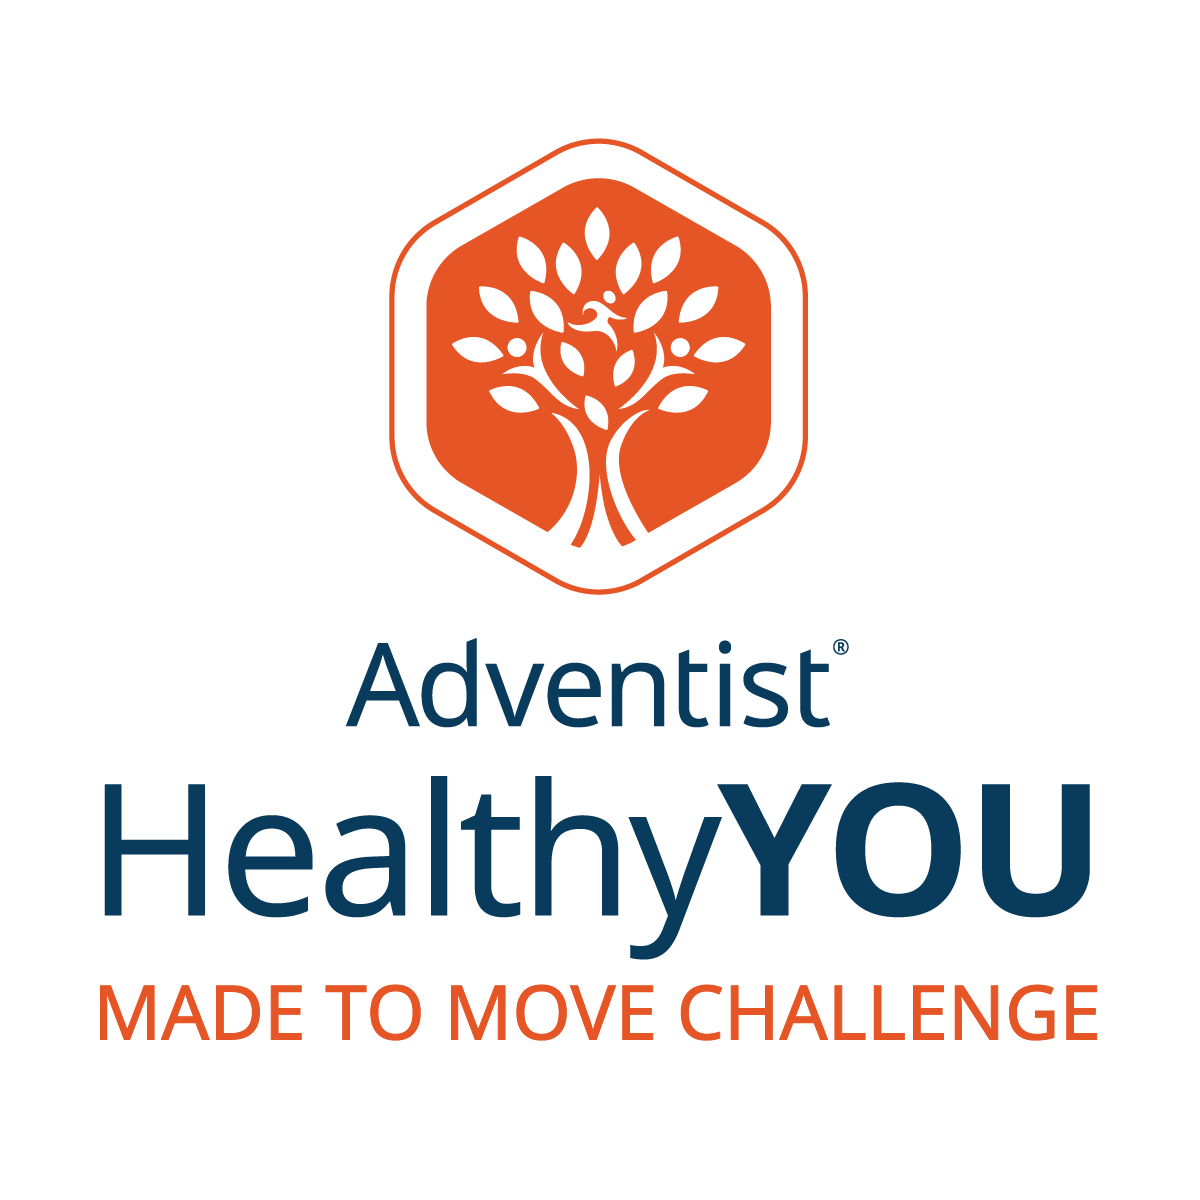 Adventist HealthyYOU Made to Move Challenge